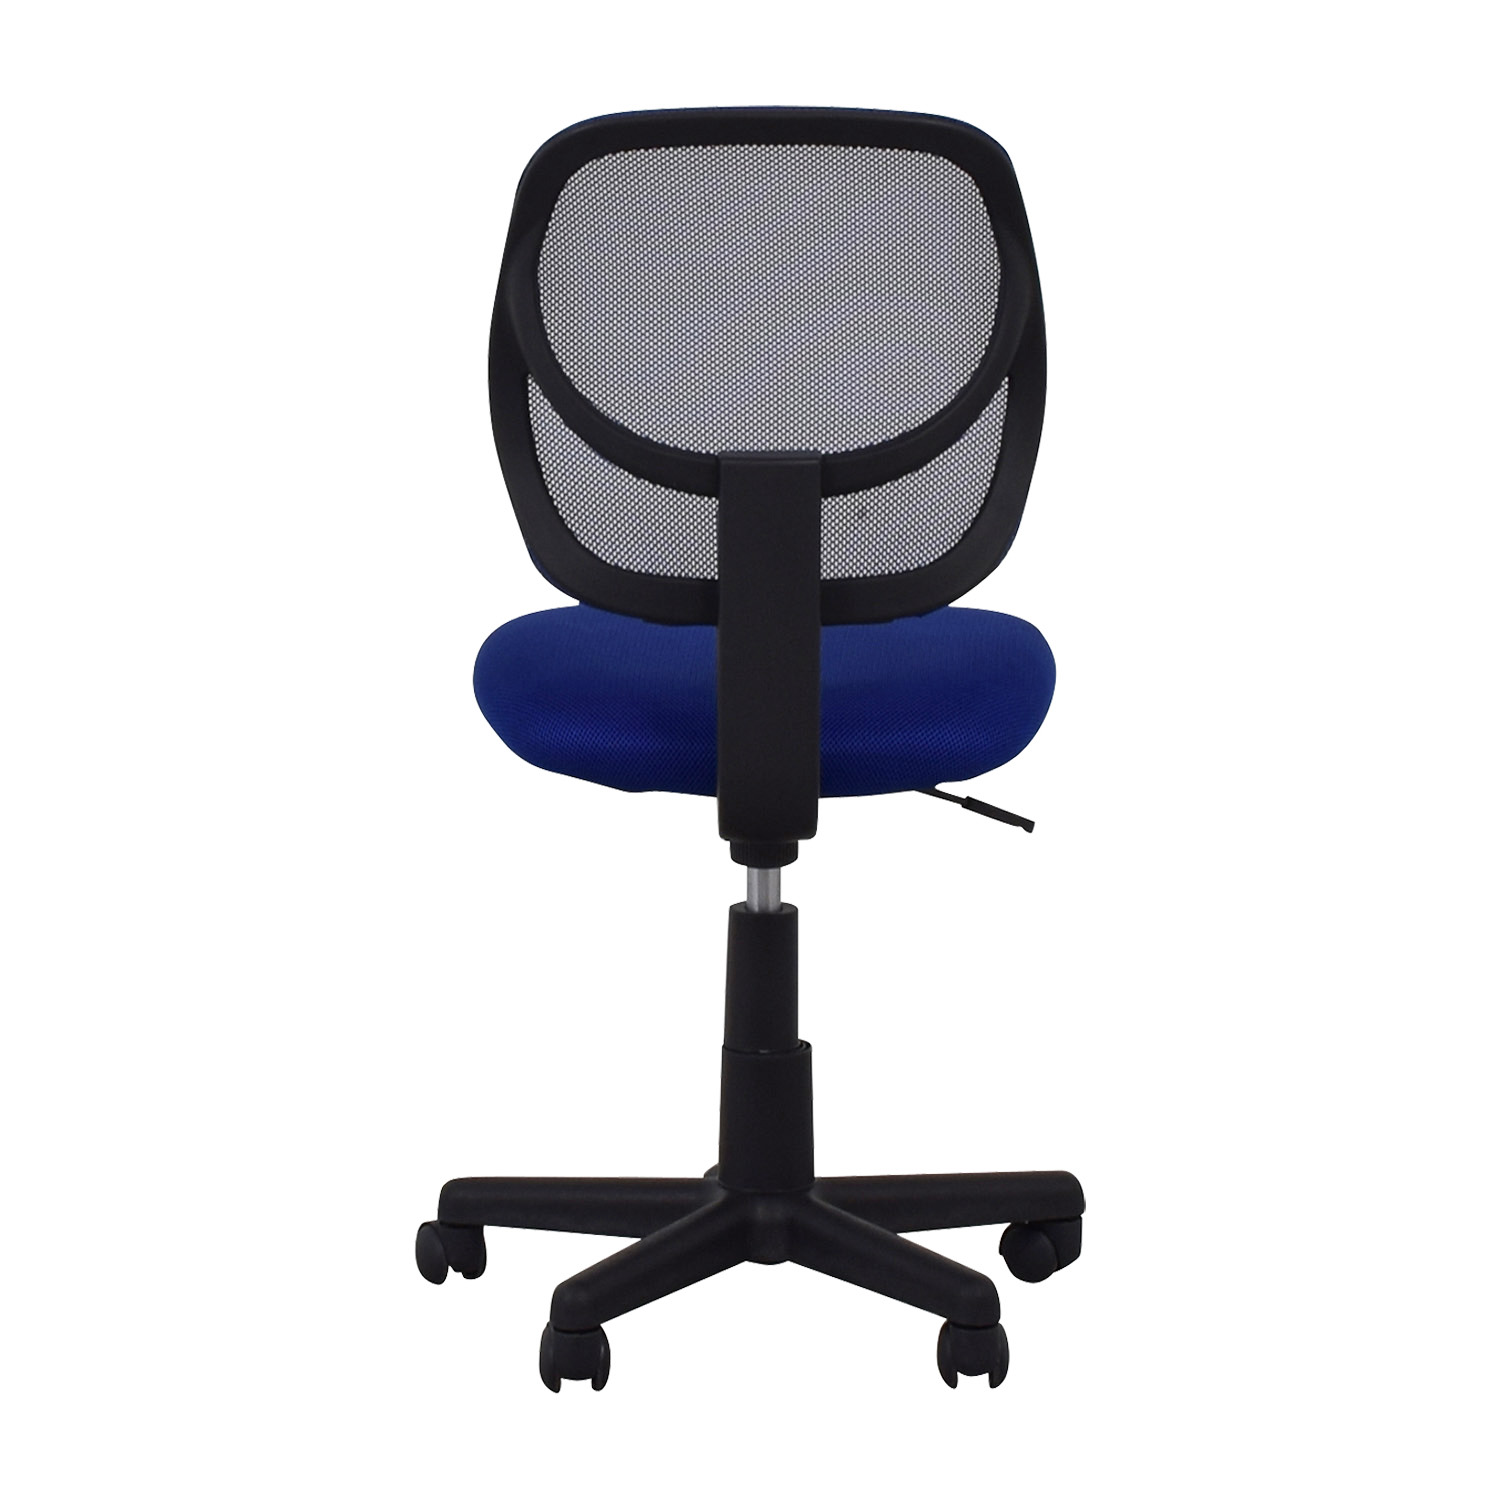 Blue Office Chair price